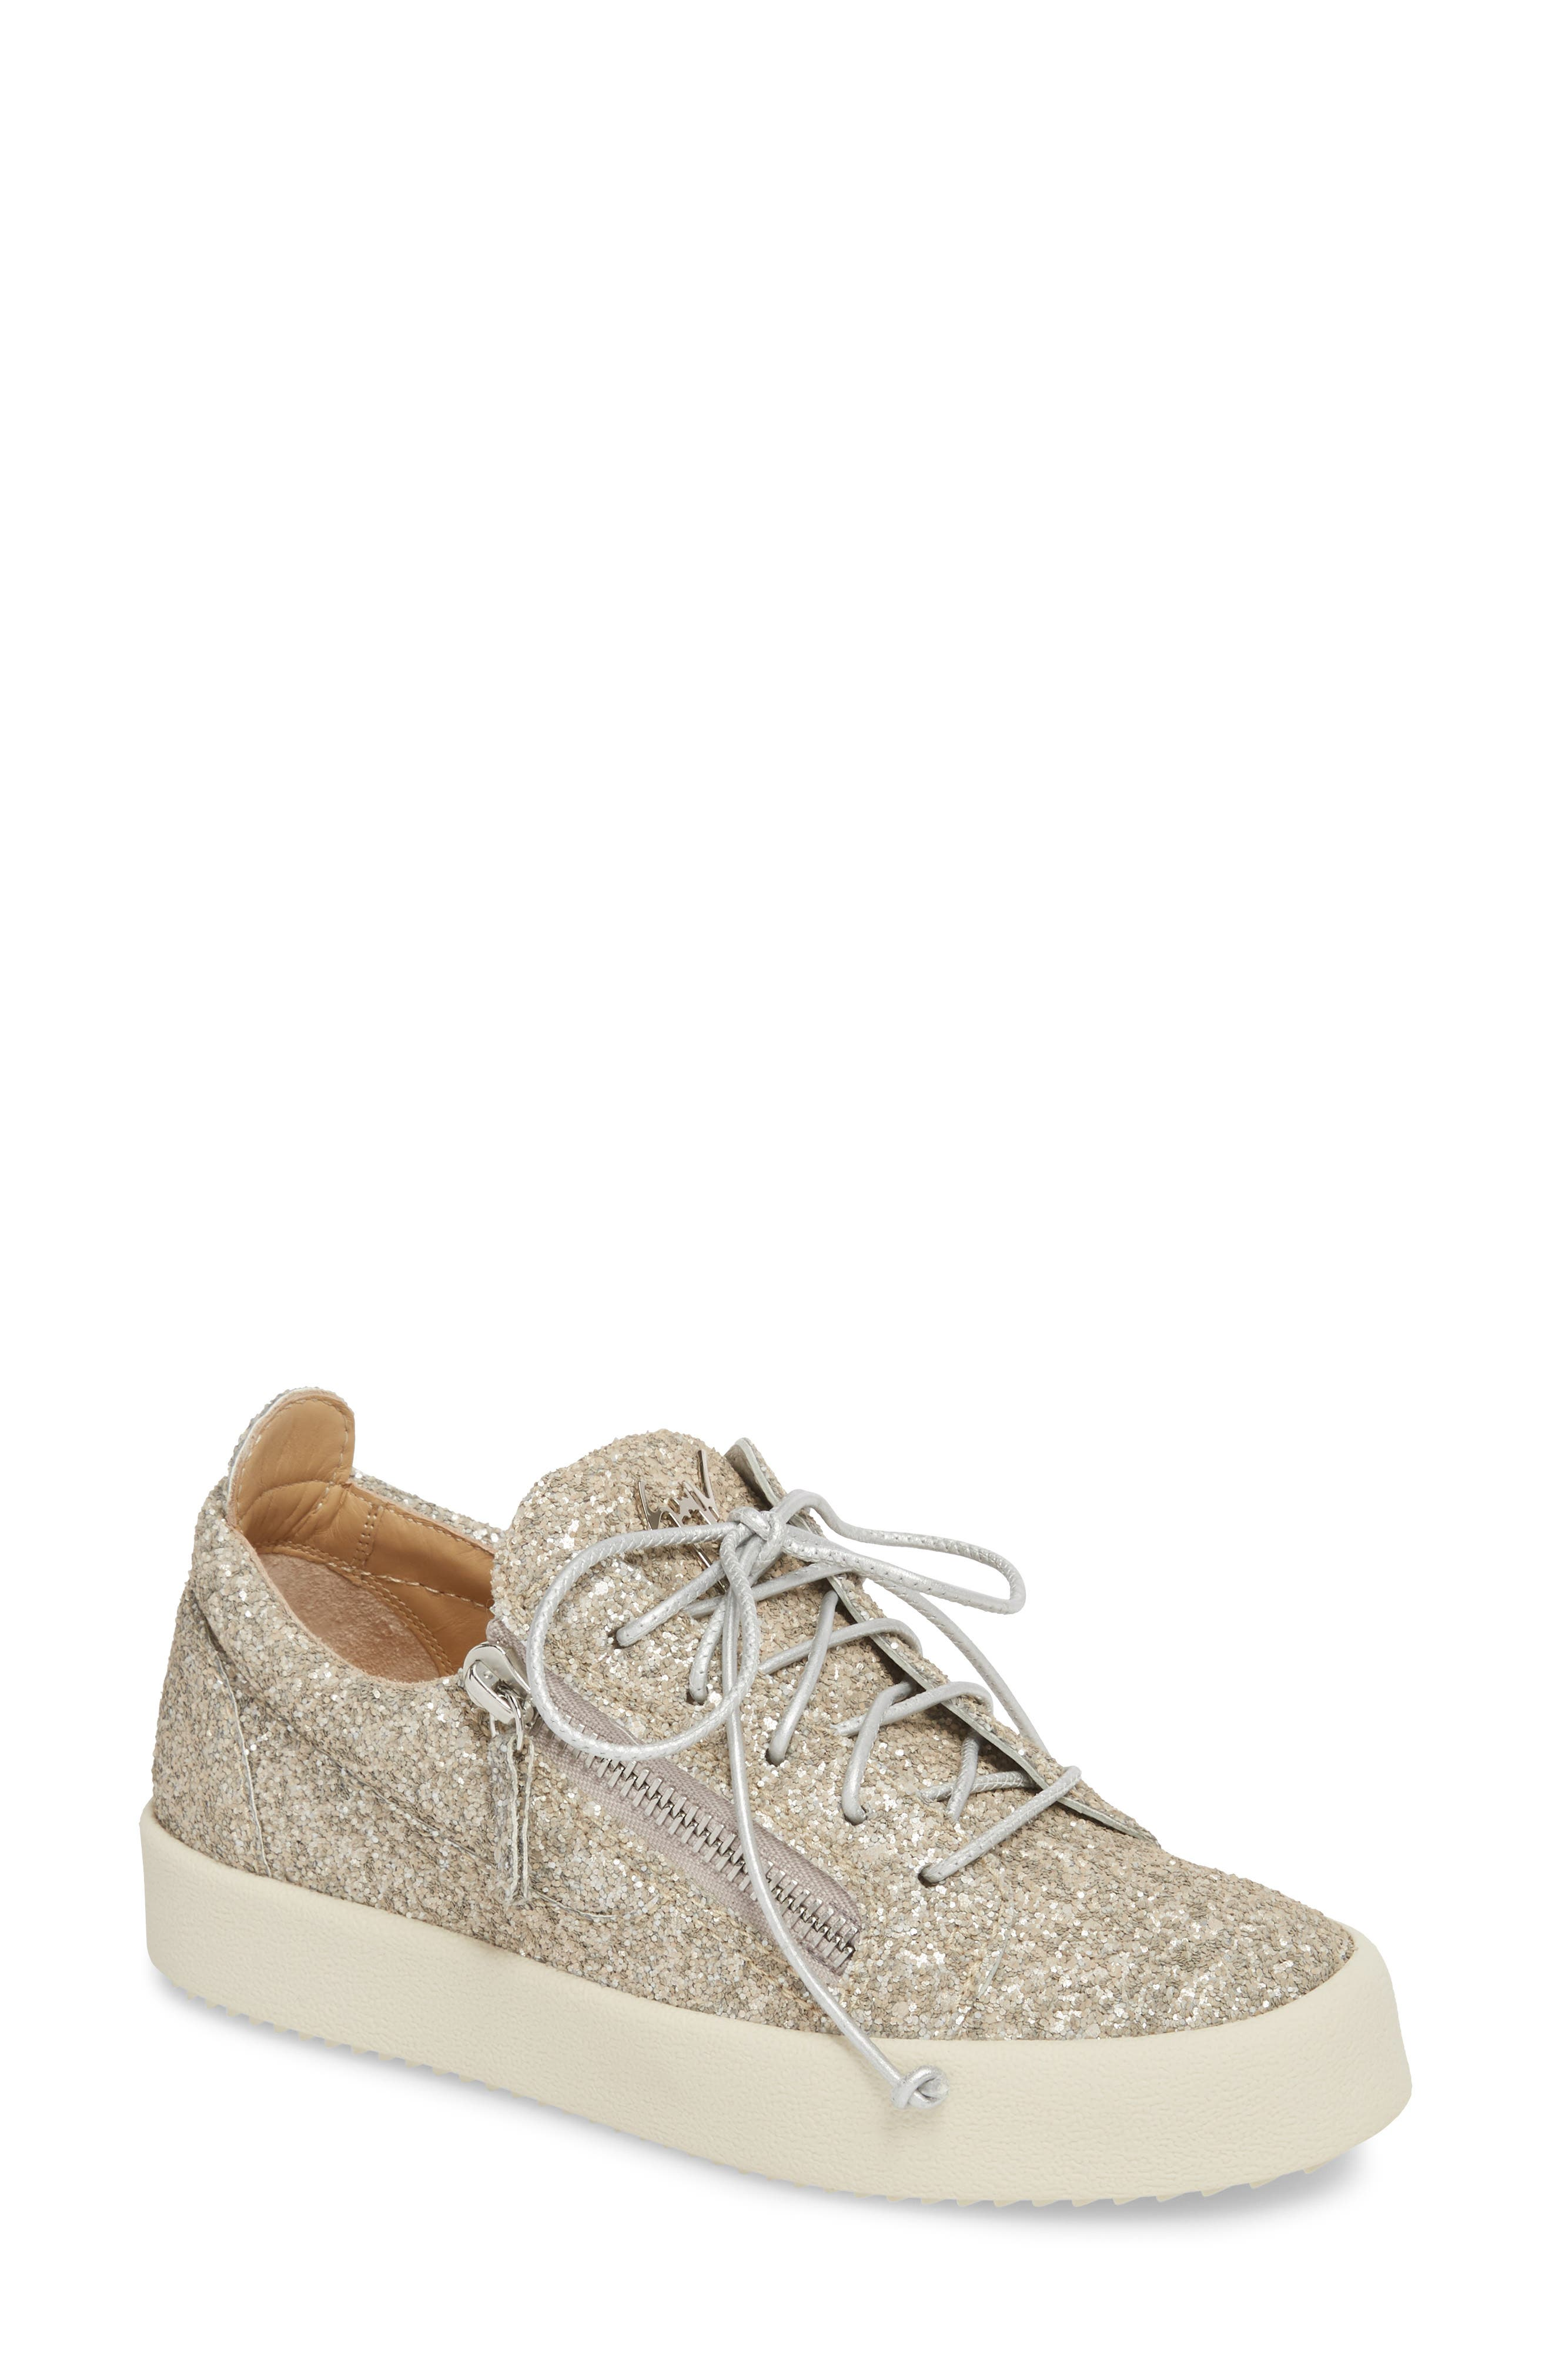 May London Low Top Sneaker,                             Main thumbnail 1, color,                             Champagne